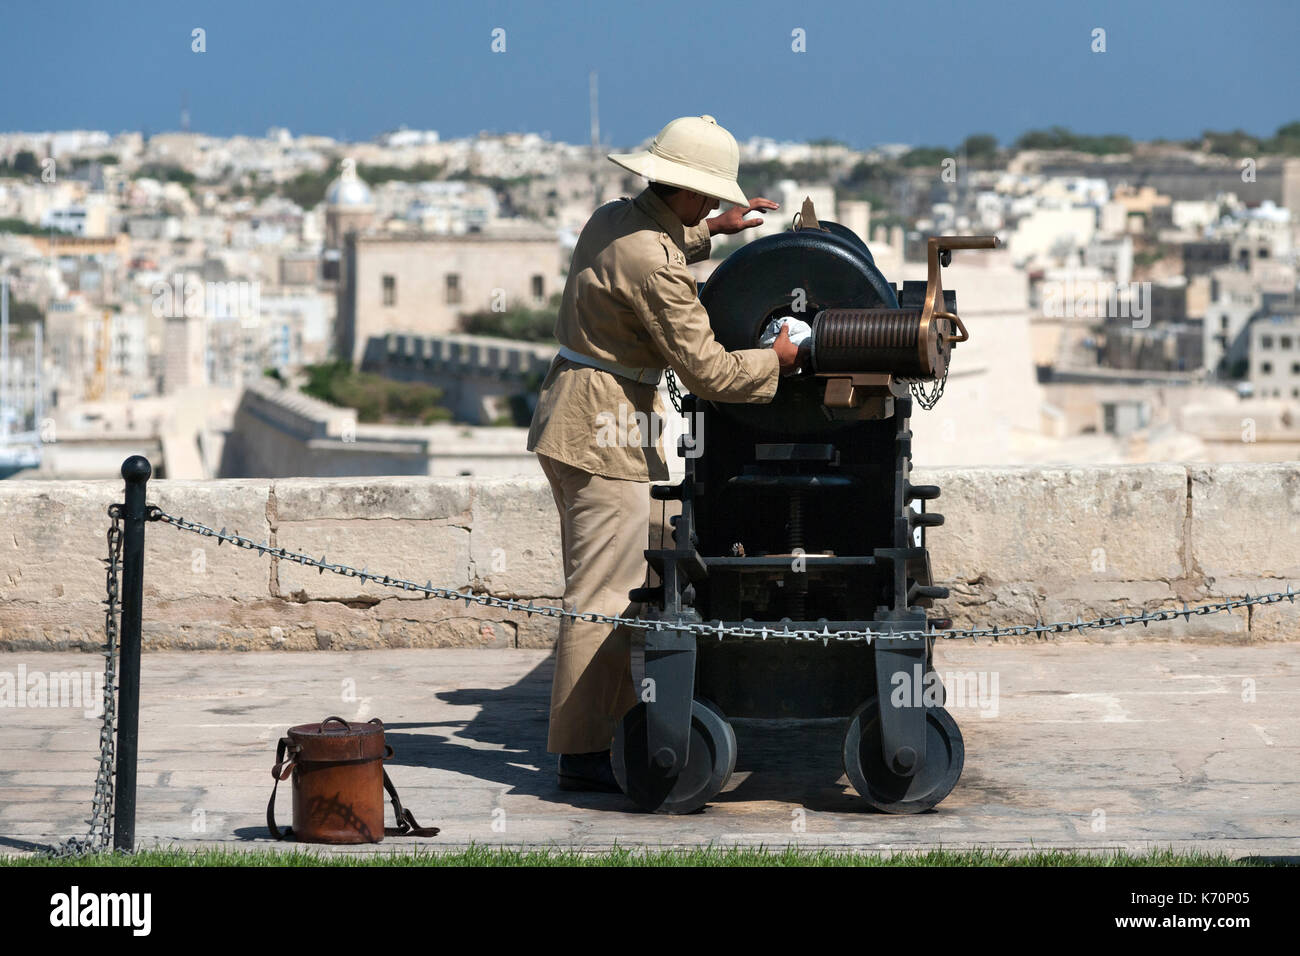 The noon cannon being prepared for firing at the Saluting Battery in Valletta, Malta. - Stock Image